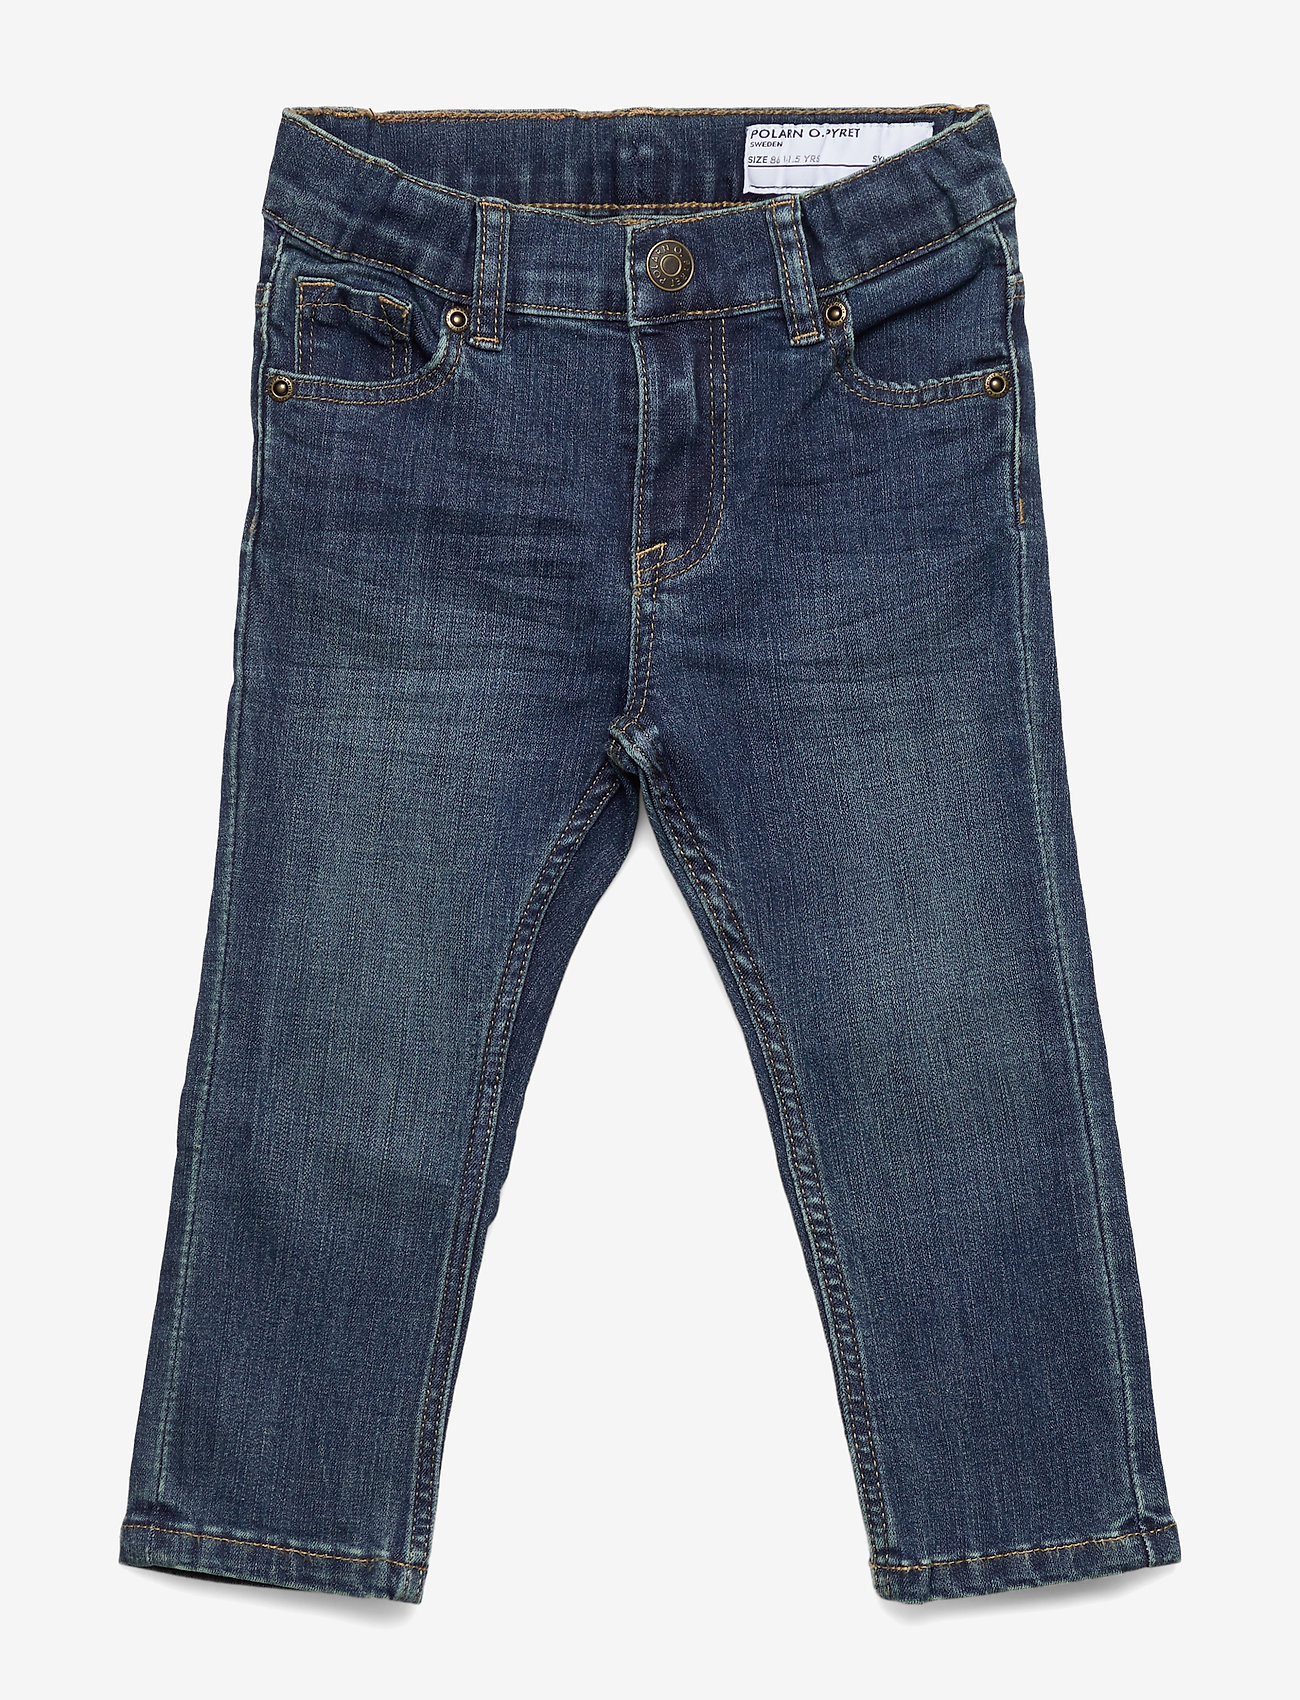 Polarn O. Pyret - Super slim fit, stretch jeans - jeans - blue denim - 0